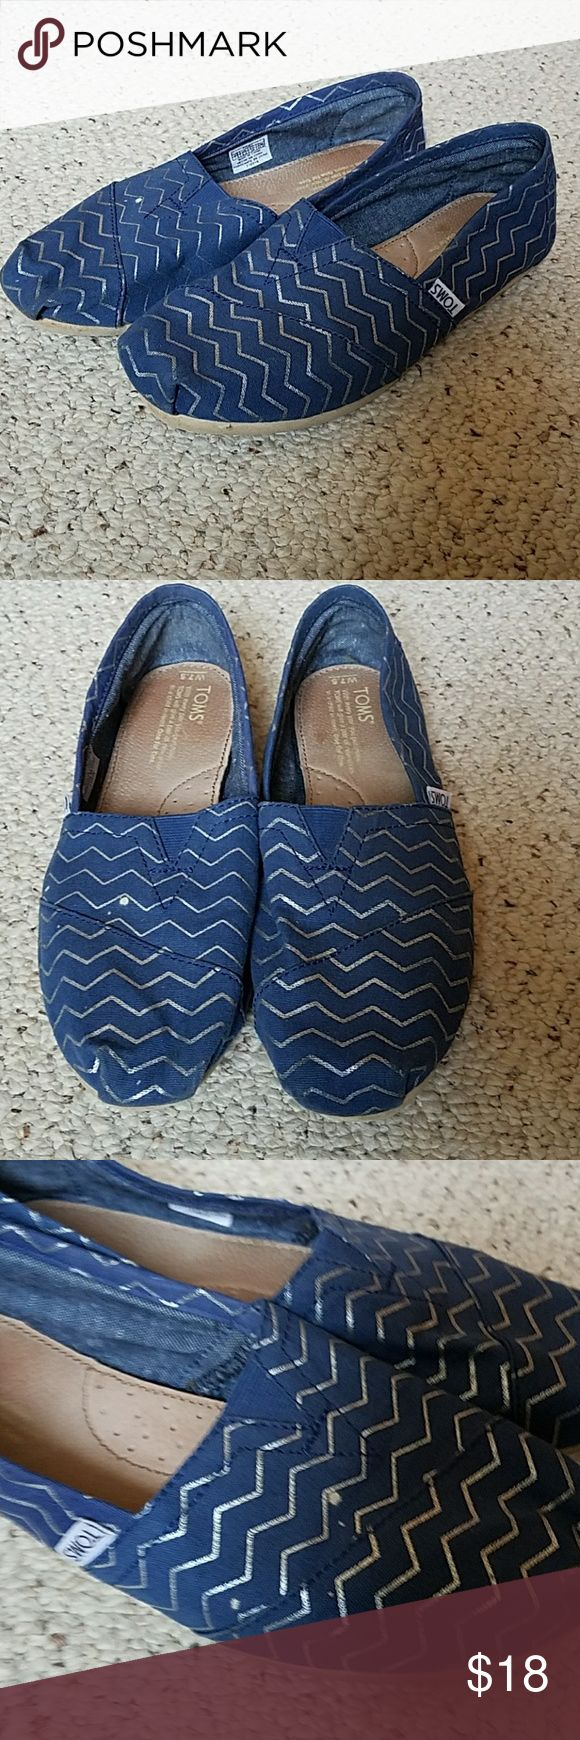 Toms size 7.5 Adorable blue and metallic silver chevron toms in size 7.5.  These shoes are in good used contition, the only flaws are a few very small white spots (pretty hard to notice due to the design of the facric) on the front of the right shoe, see pictures. Toms Shoes Flats & Loafers